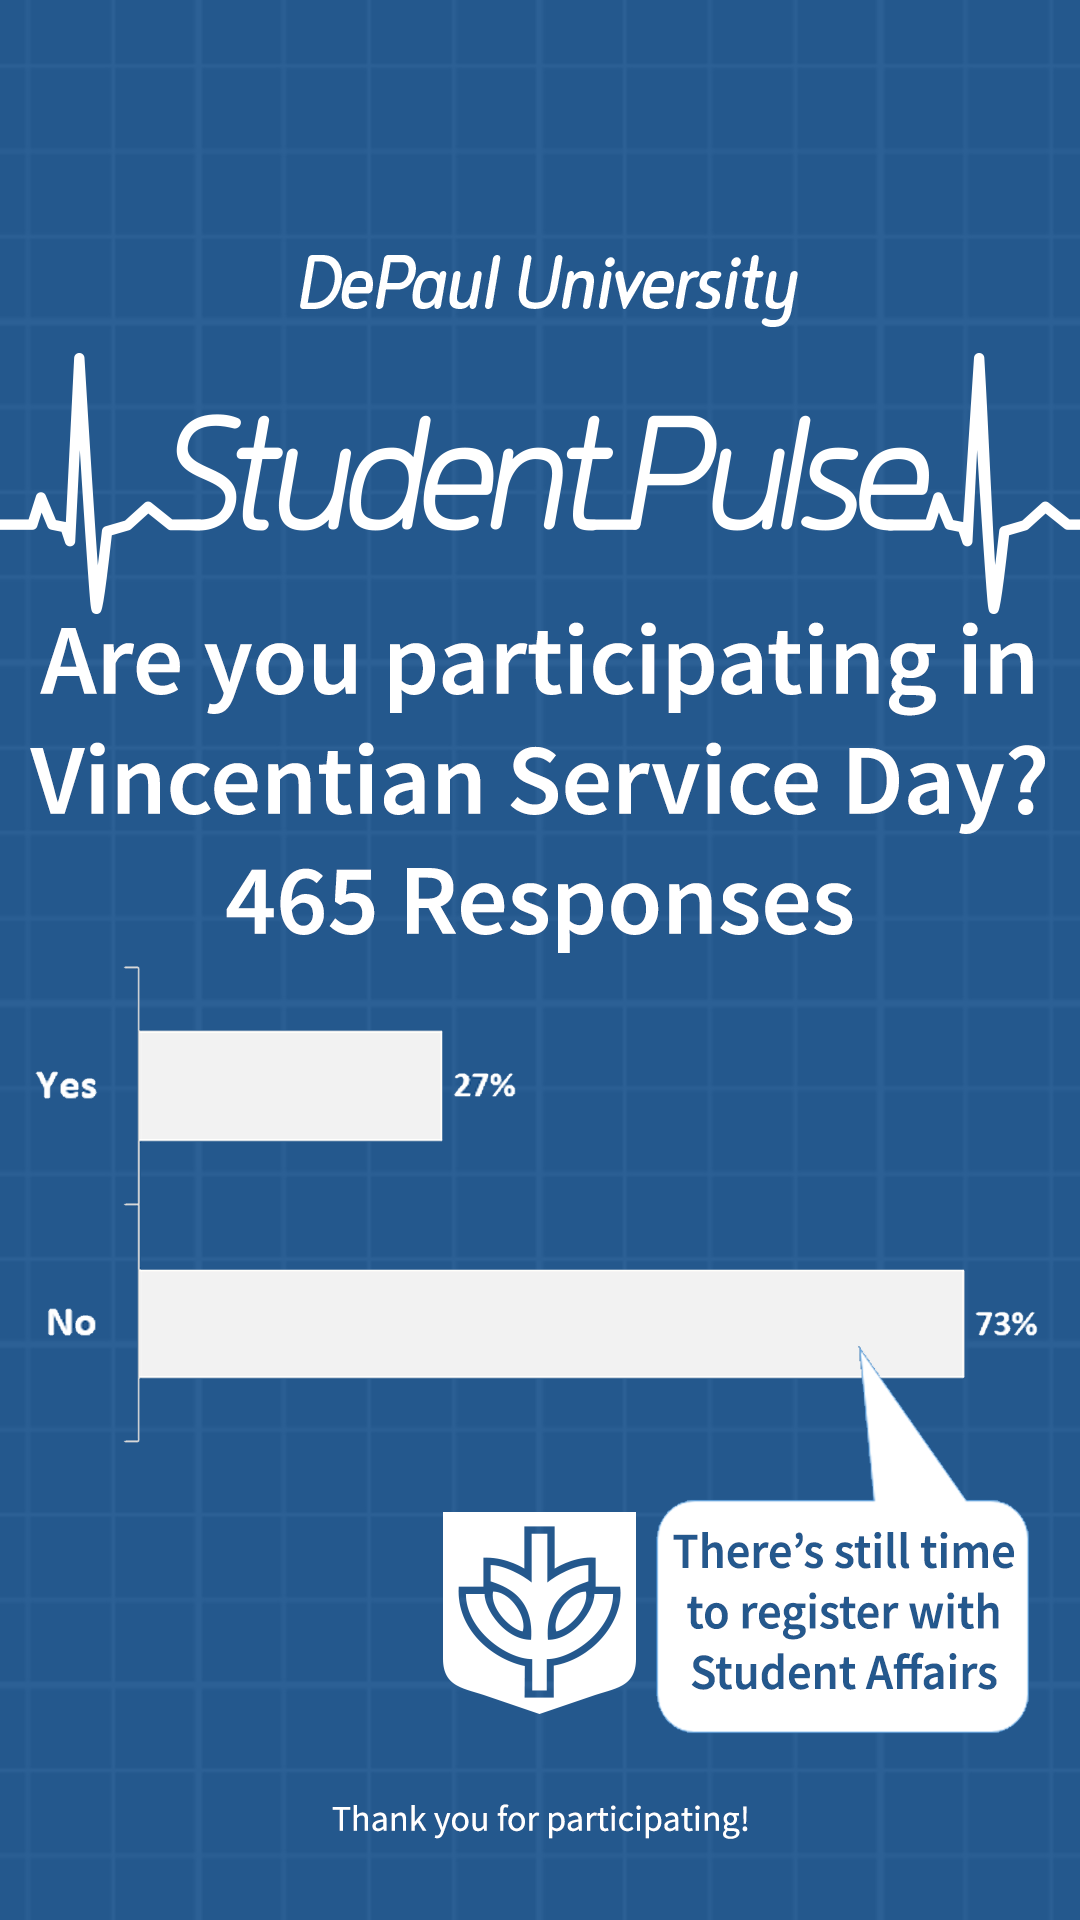 Are you participating in Vincentian Service Day?